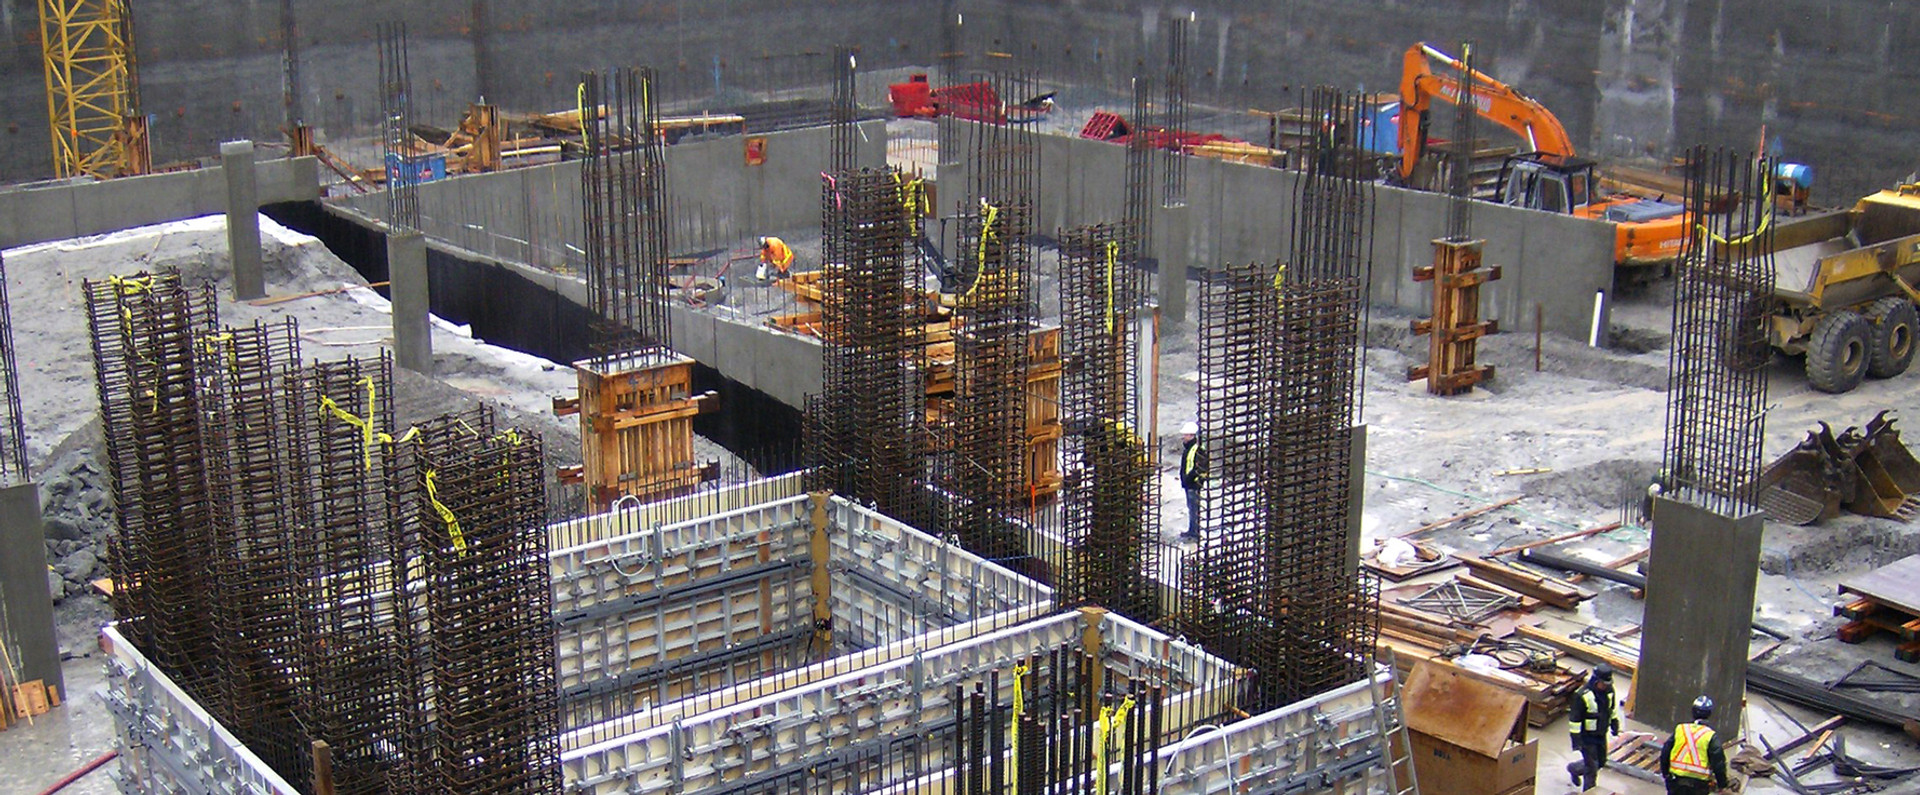 LargeCommercialProjects2.jpg